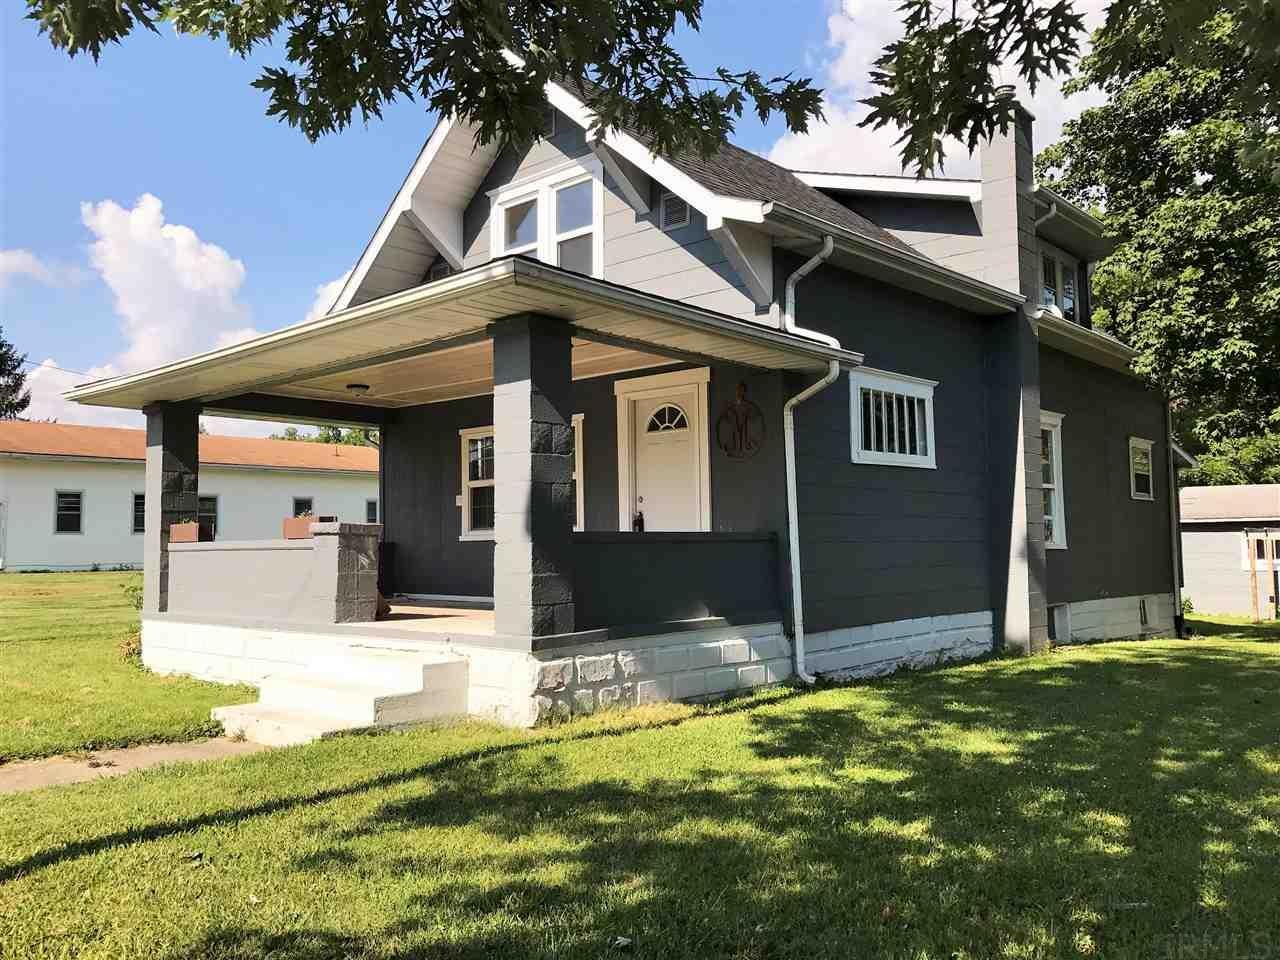 353 S MAIN, Upland, IN 46989